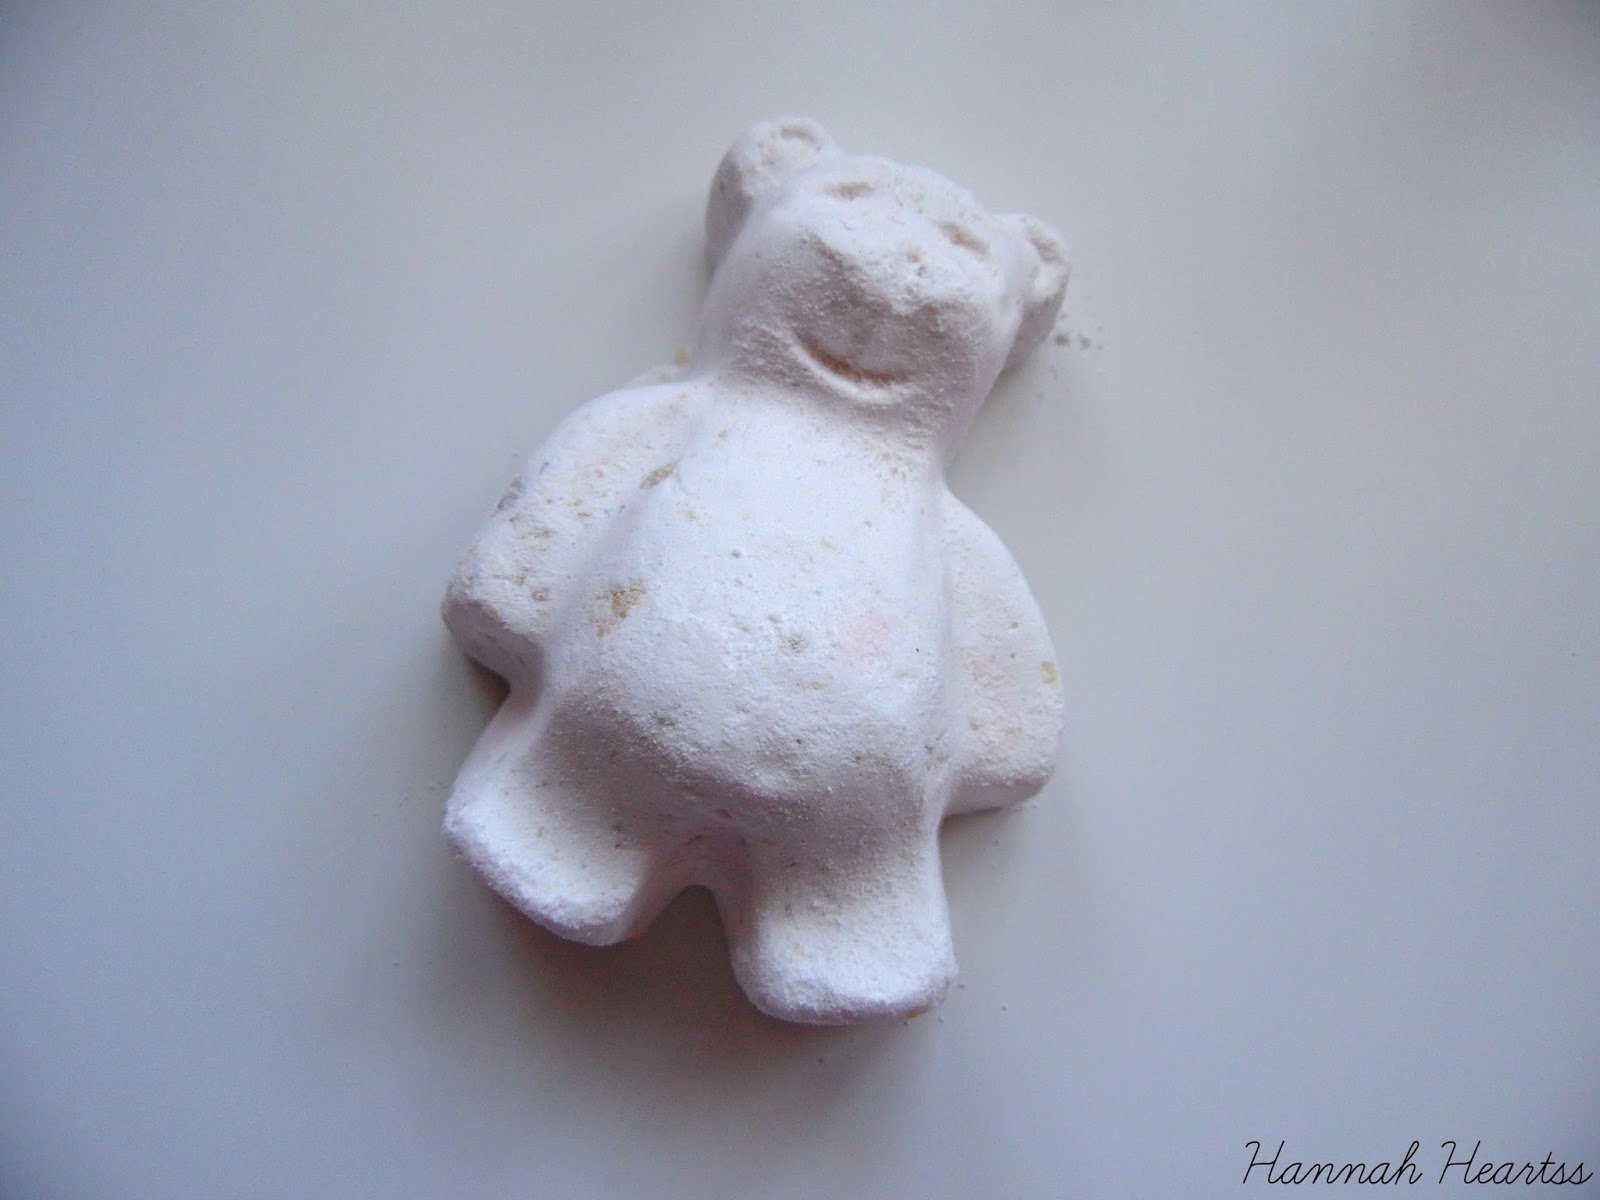 Lush Butterbear Review